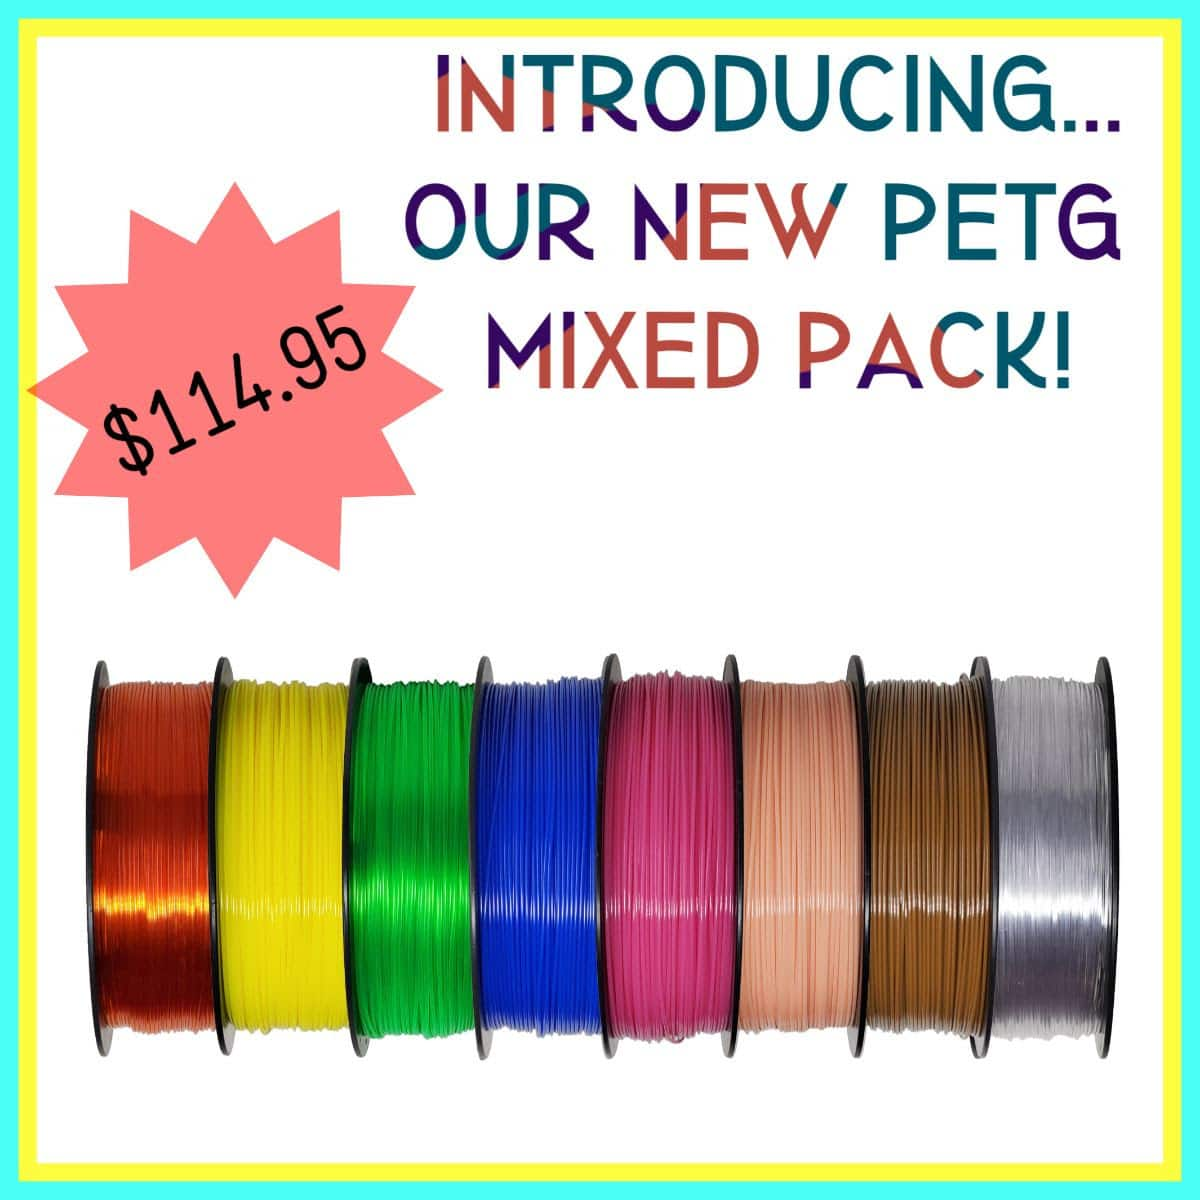 Zyltech 3d printer Filament 20% off coupon and new PETG mixpack bundles $114.95